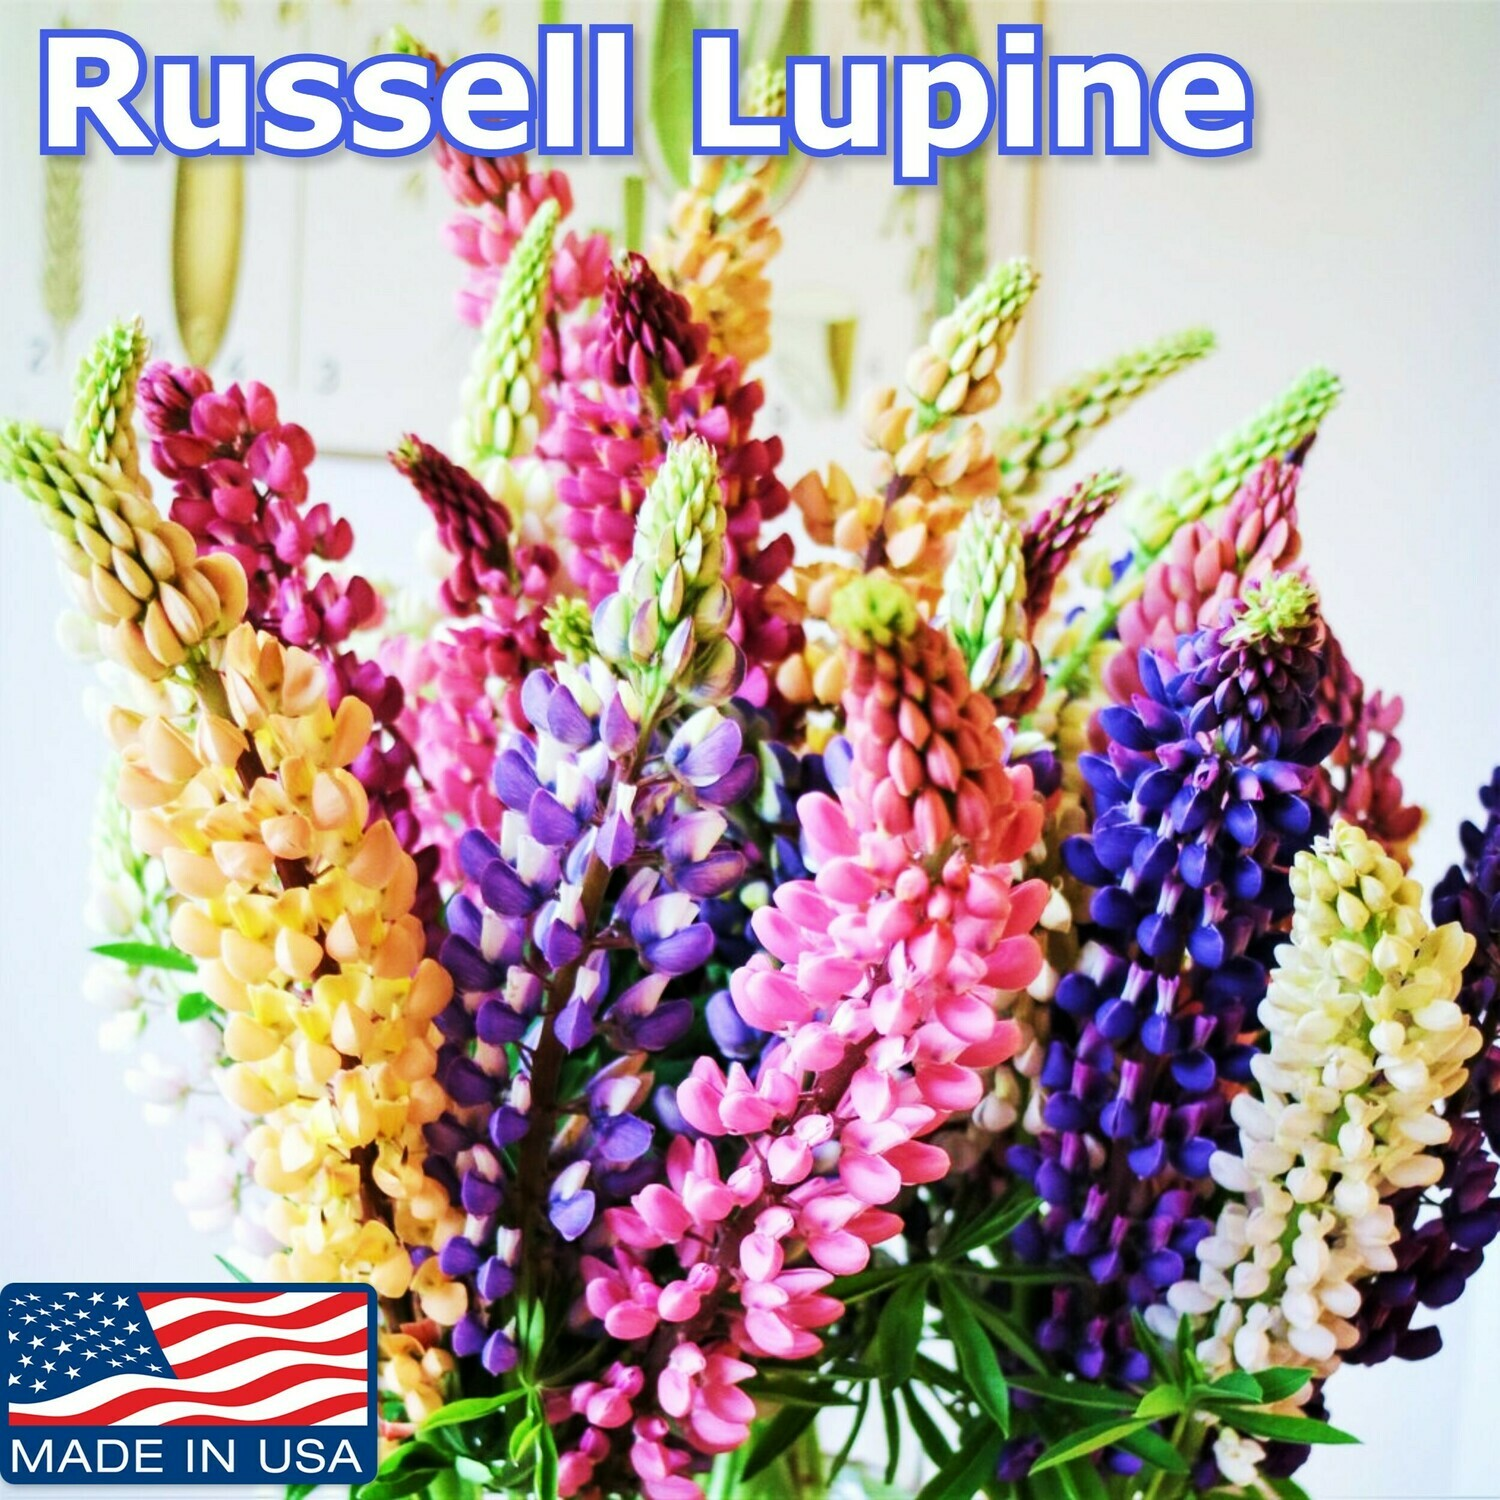 Mixed Colors RUSSELL LUPINE seeds